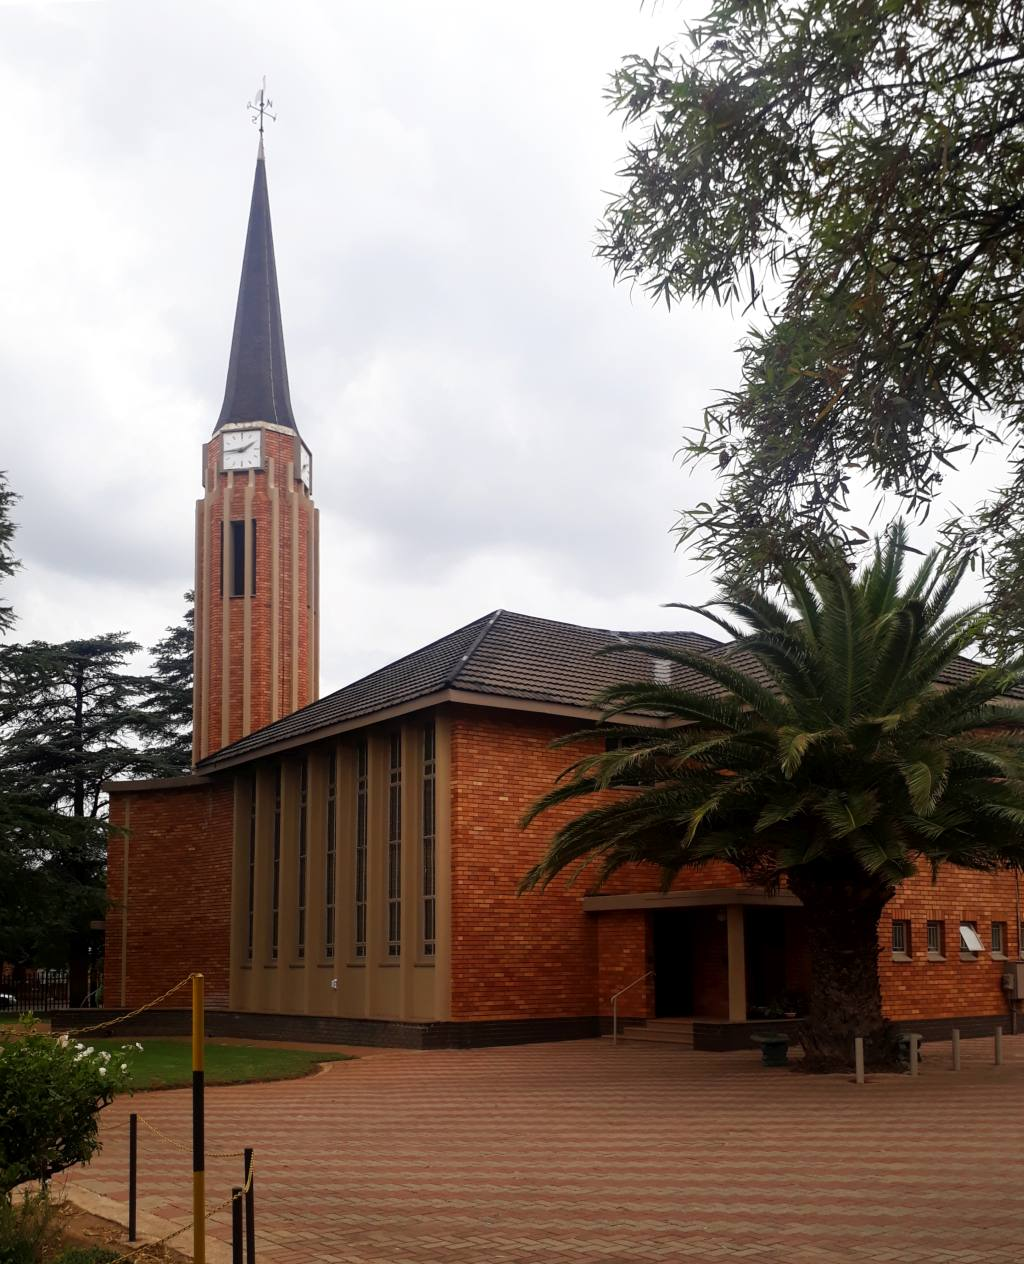 Deelfontein 01Fochville NG church